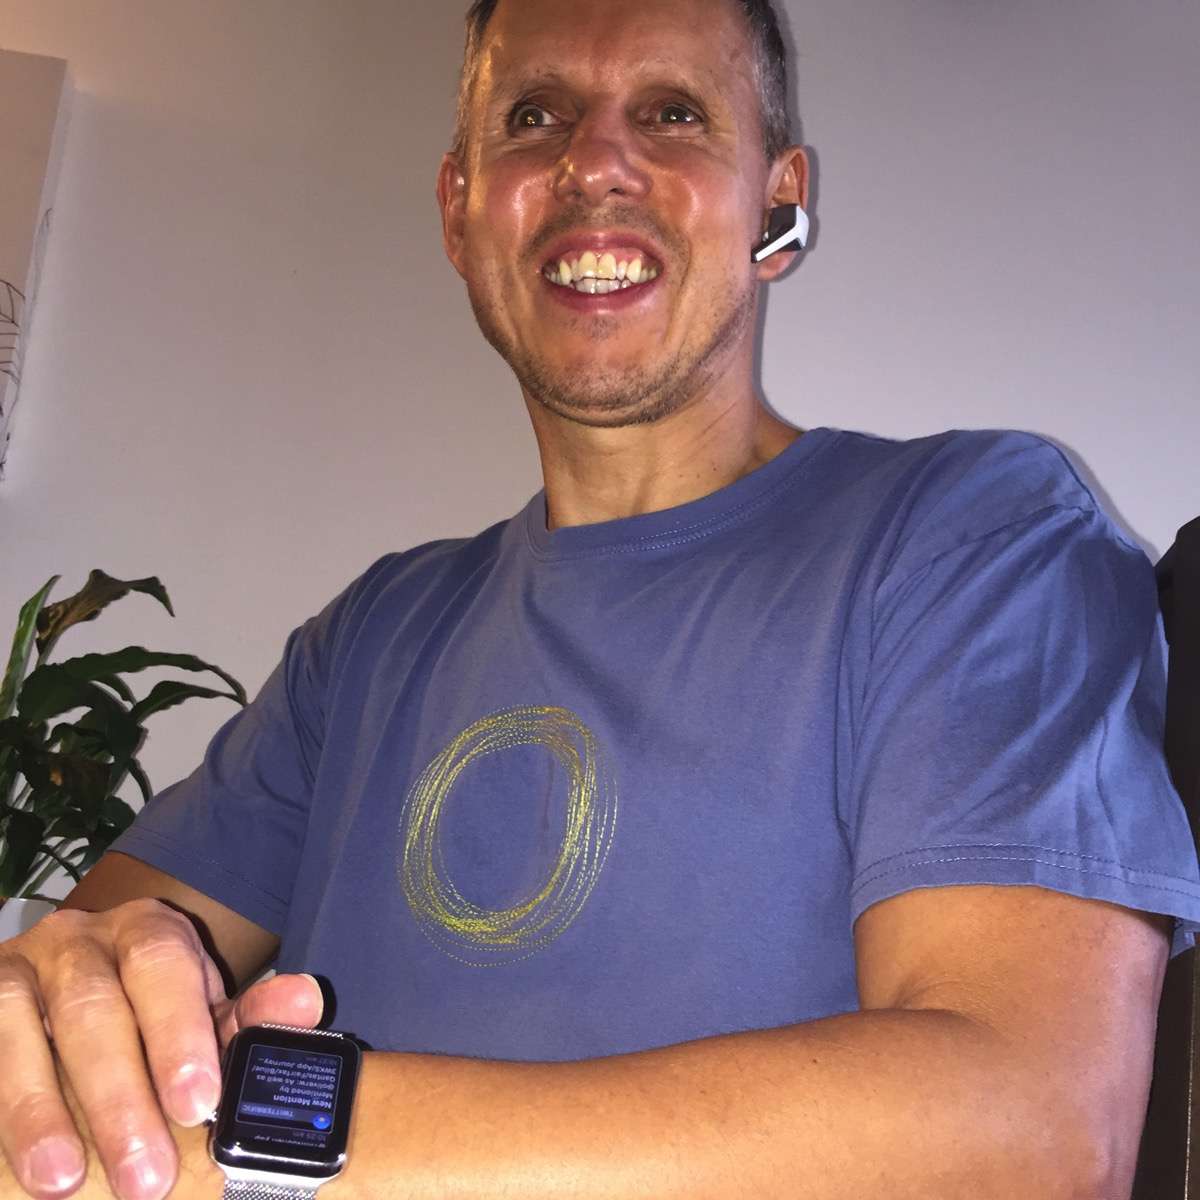 Tim with Apple Watch and Voyager Edge Earpiece